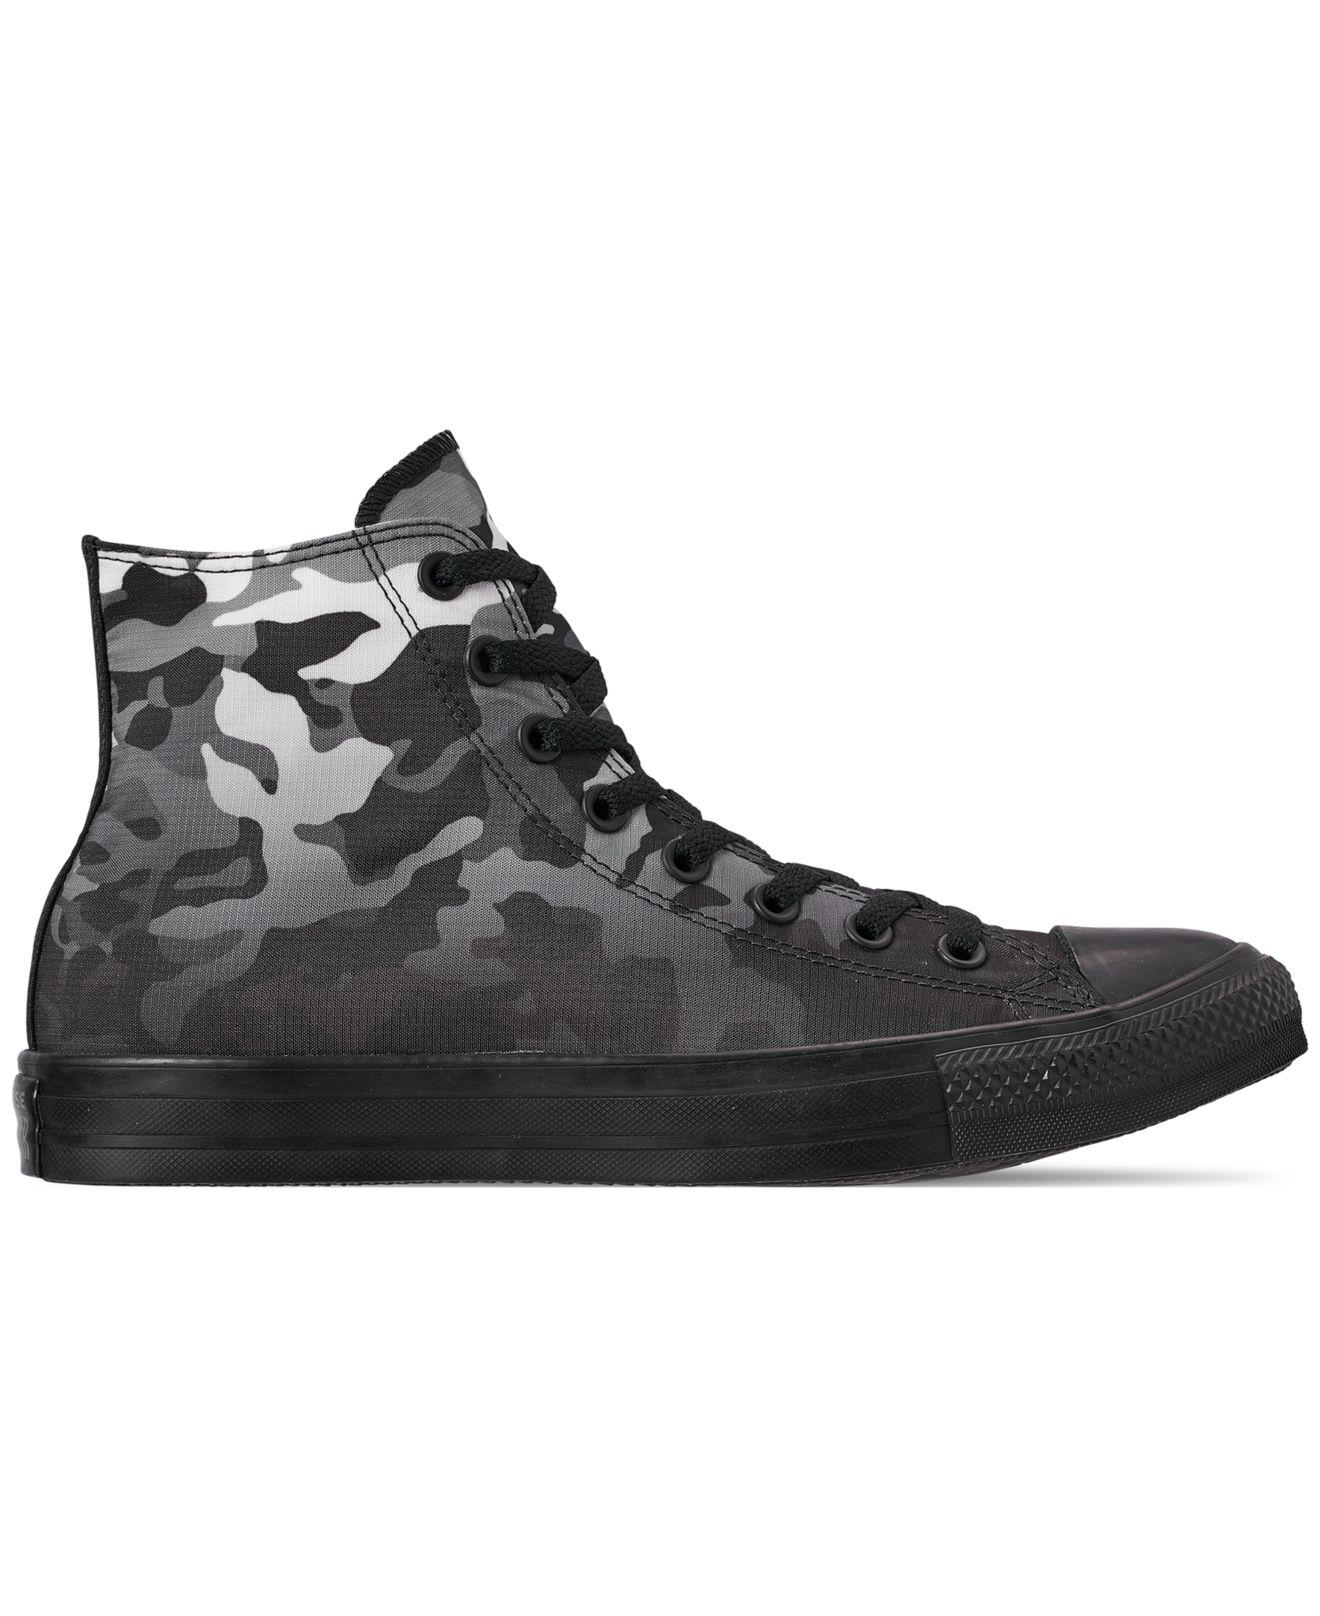 4f12a5f20803 Converse - Black Chuck Taylor All Star Gradient Camo High Top Casual  Sneakers From Finish Line. View fullscreen